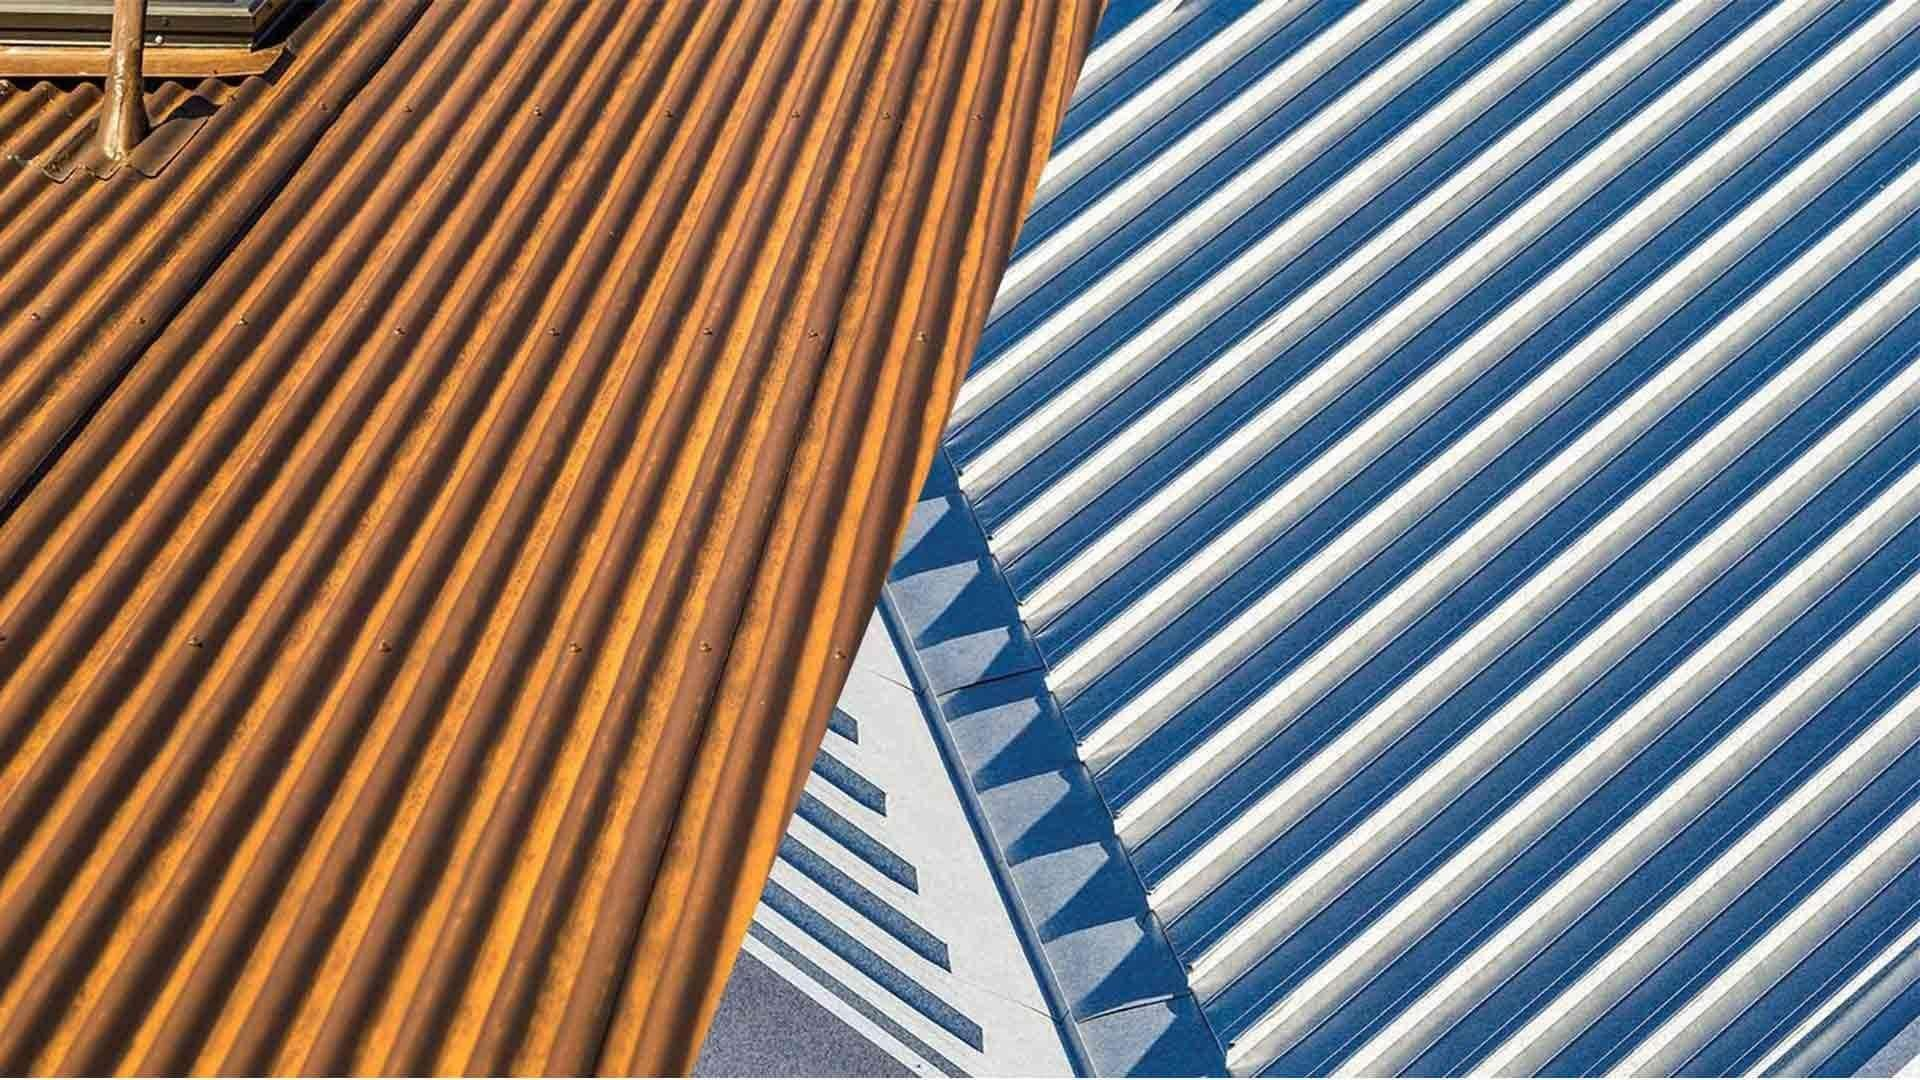 Standing Seam vs. Exposed Fastener Metal Roofing: Pros And Cons